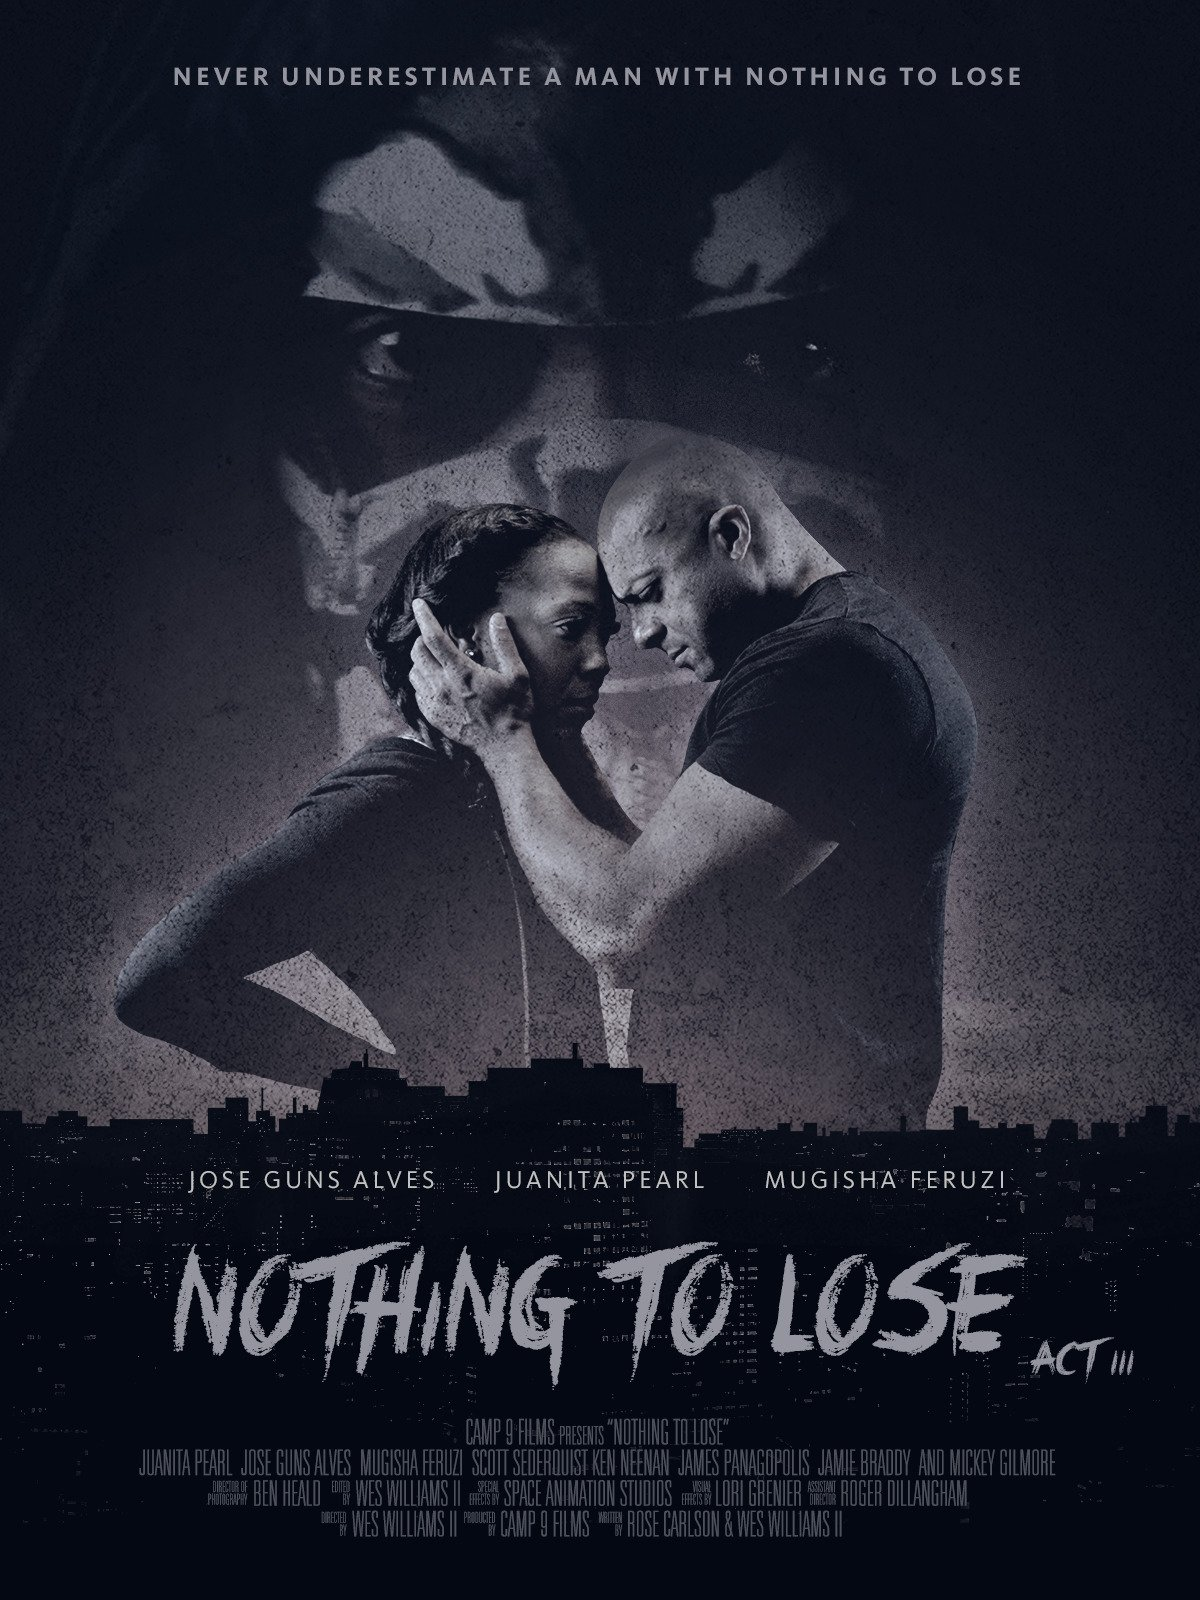 Nothing To Lose (Act III) on Amazon Prime Instant Video UK